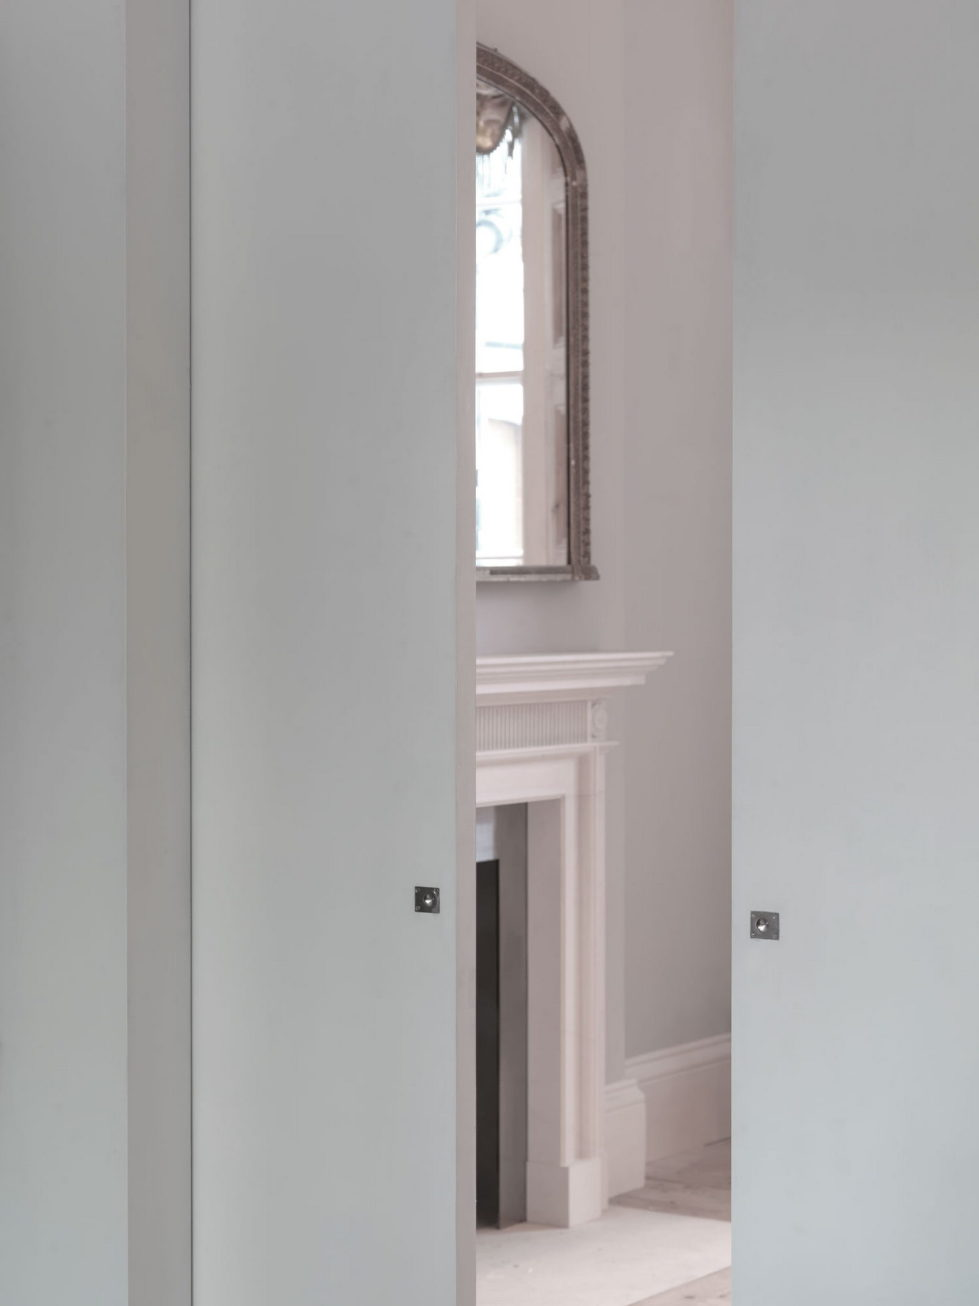 The restoration of the townhouse in London 4